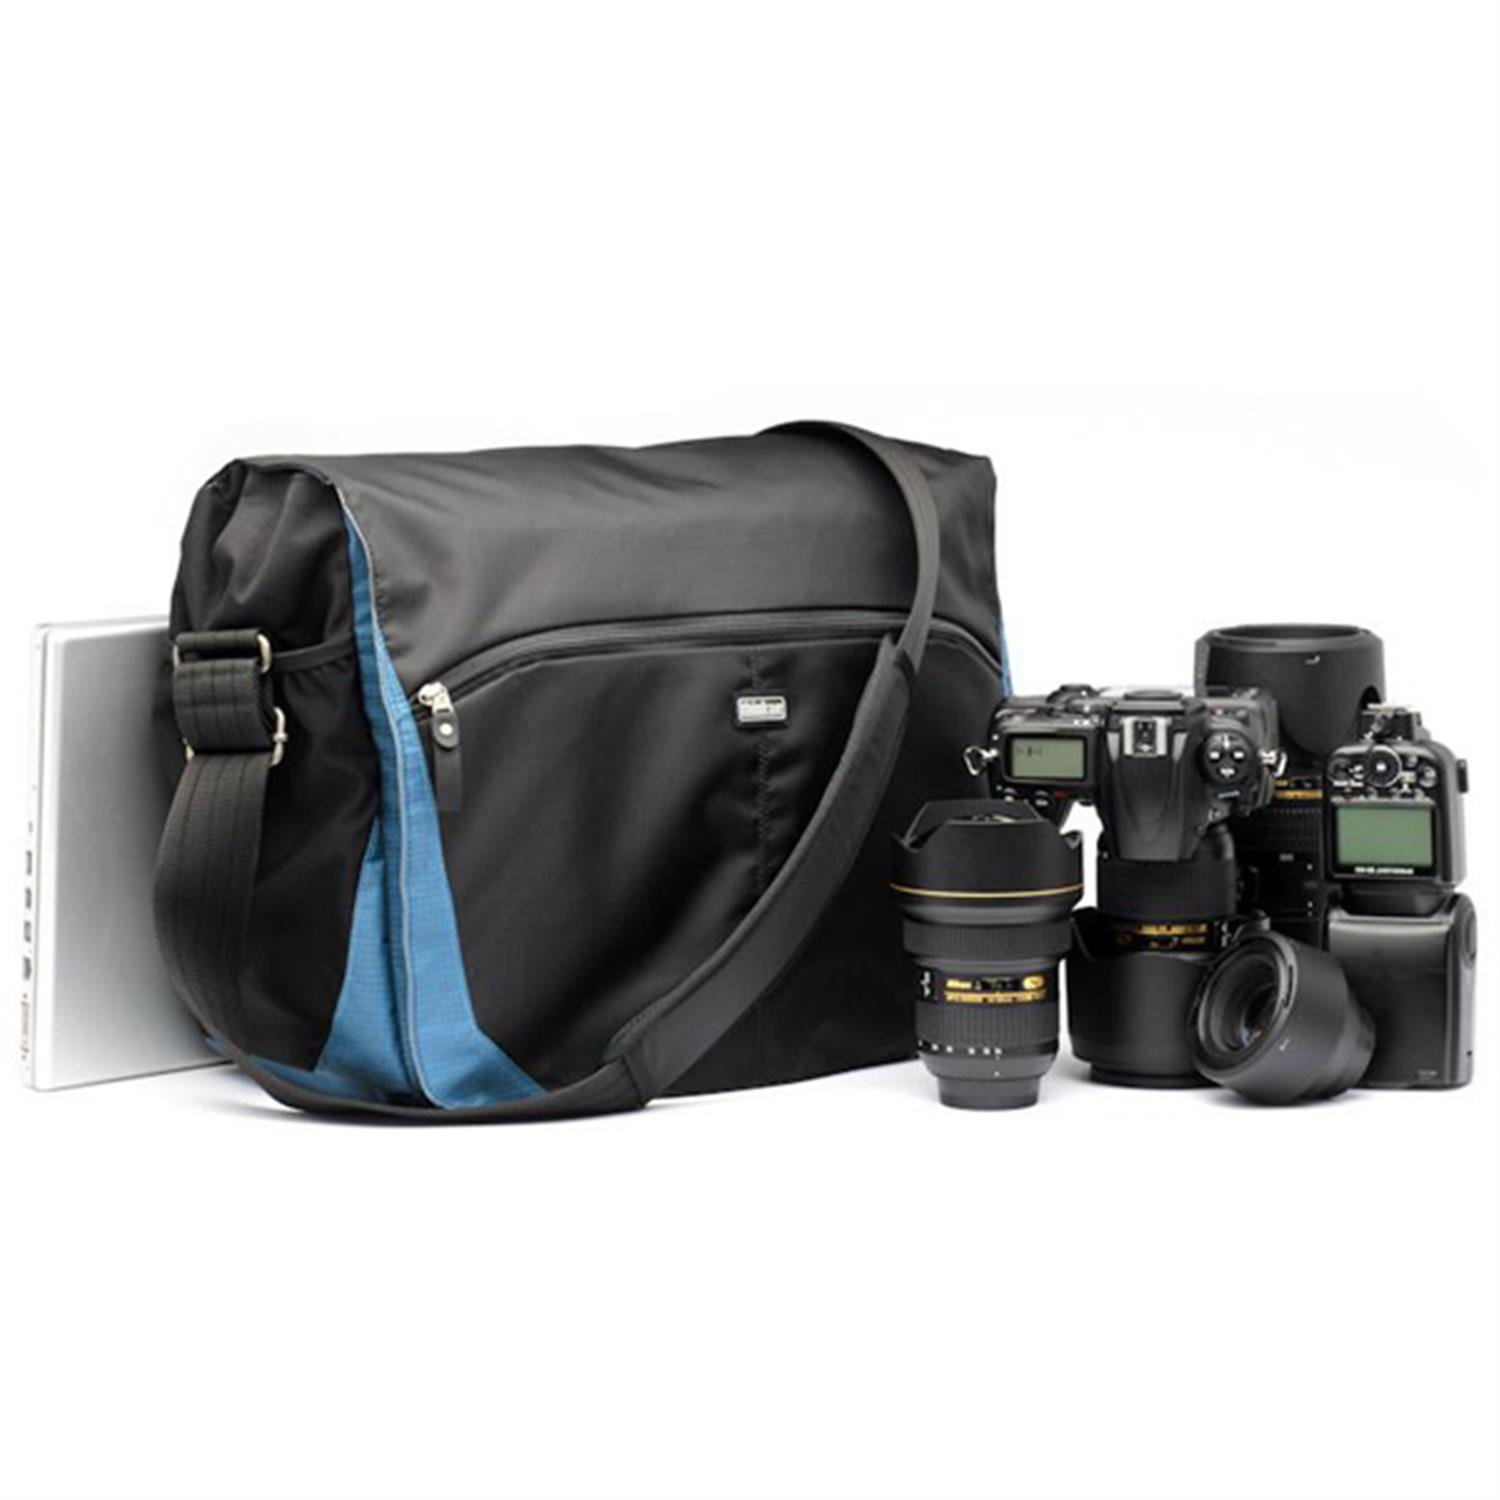 Think Tank Photo CityWalker 30 Messenger Camera Bag in Blue Slate by Think Tank Photo